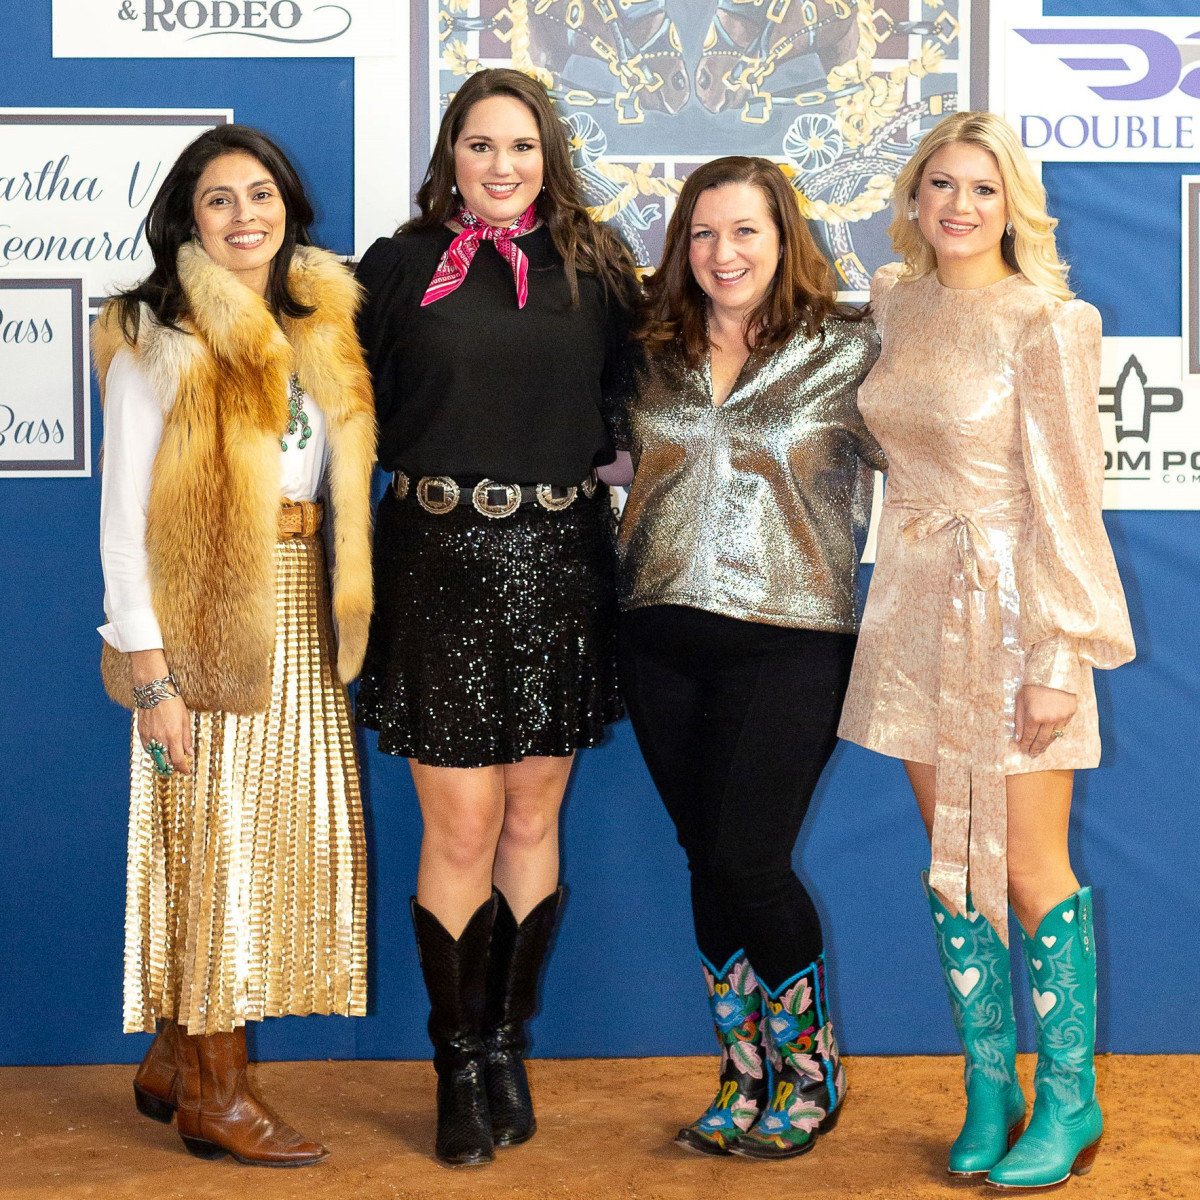 Sara Dameron, Co-Chair Erica Pifer, JLFW Fund Development Vice President Robin Greenhaw, Co-Chair Rachael Quisenberry